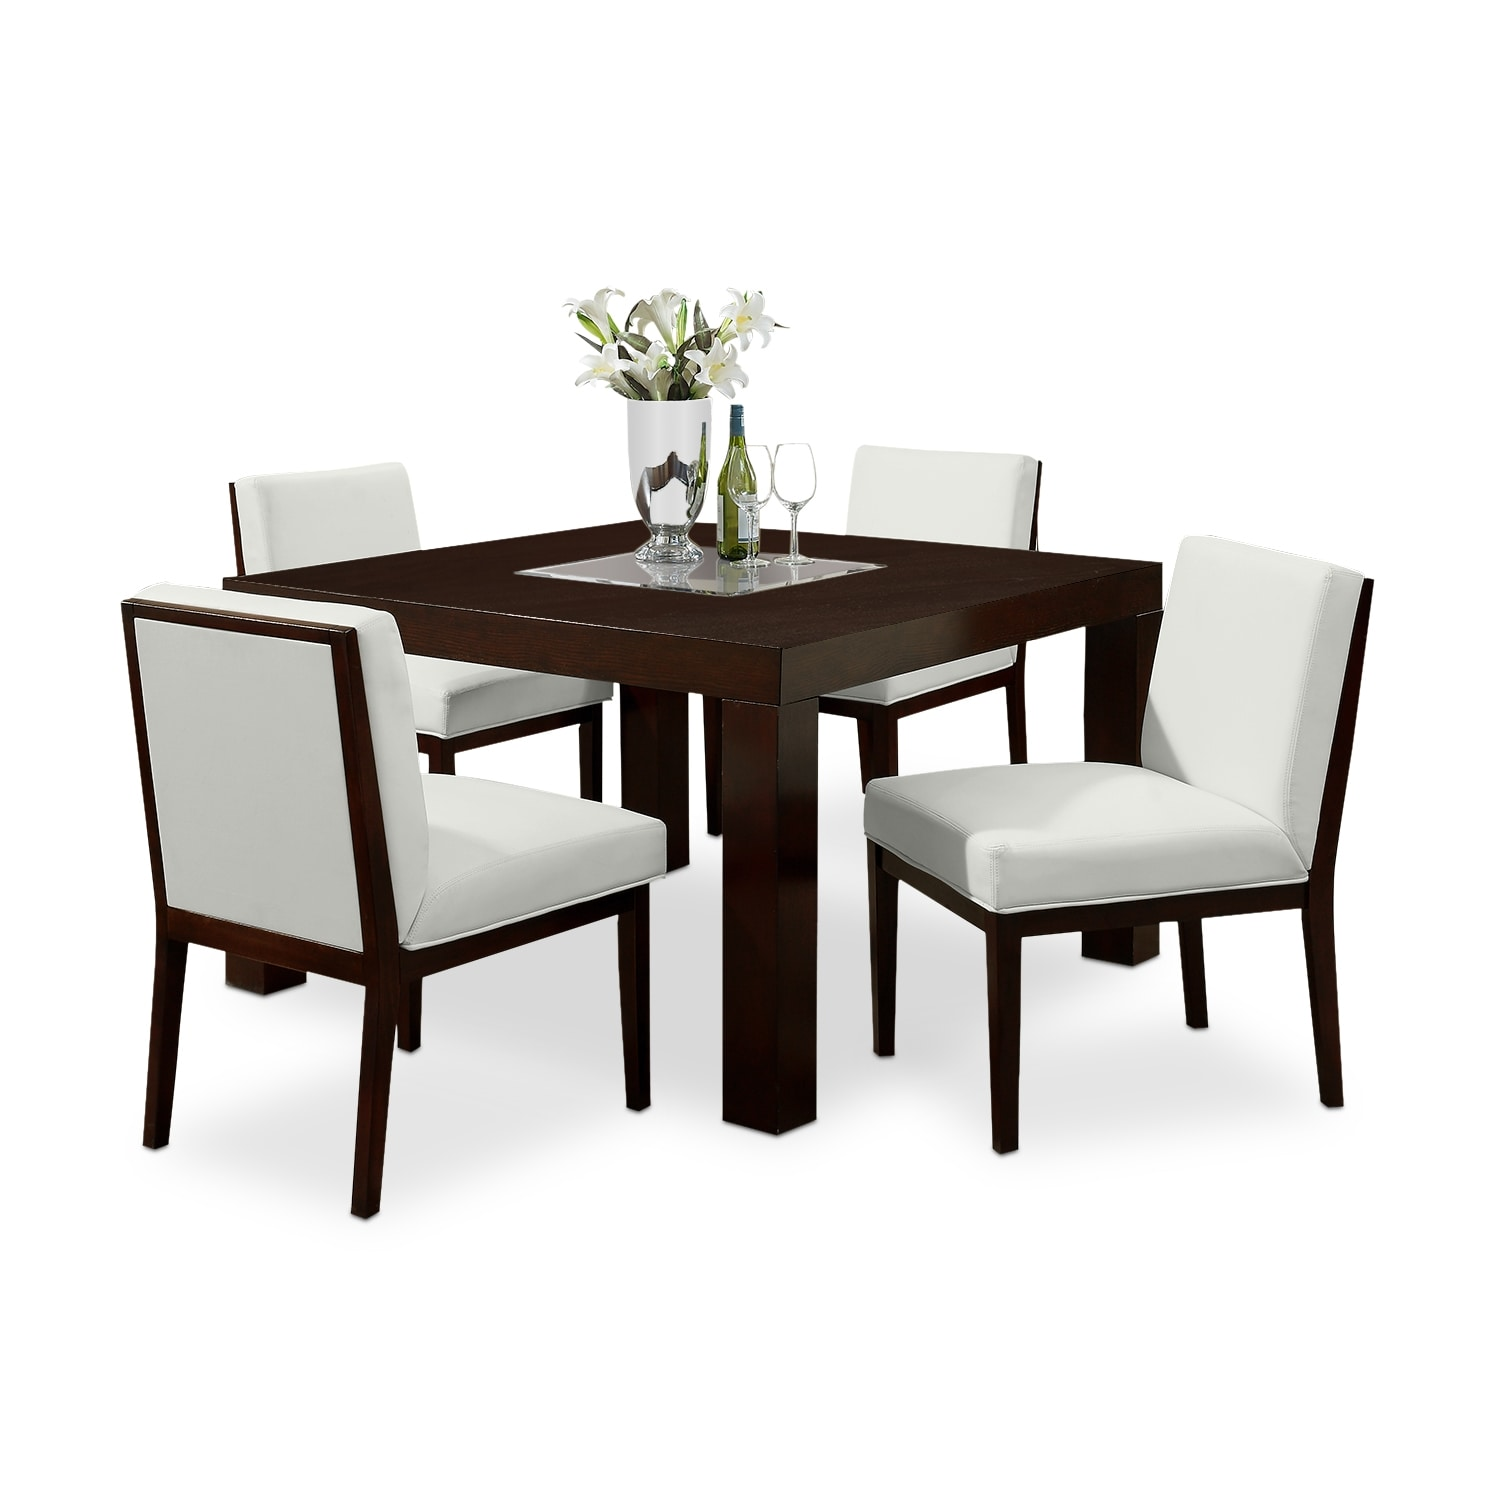 Coming soon for Dining room furniture specials